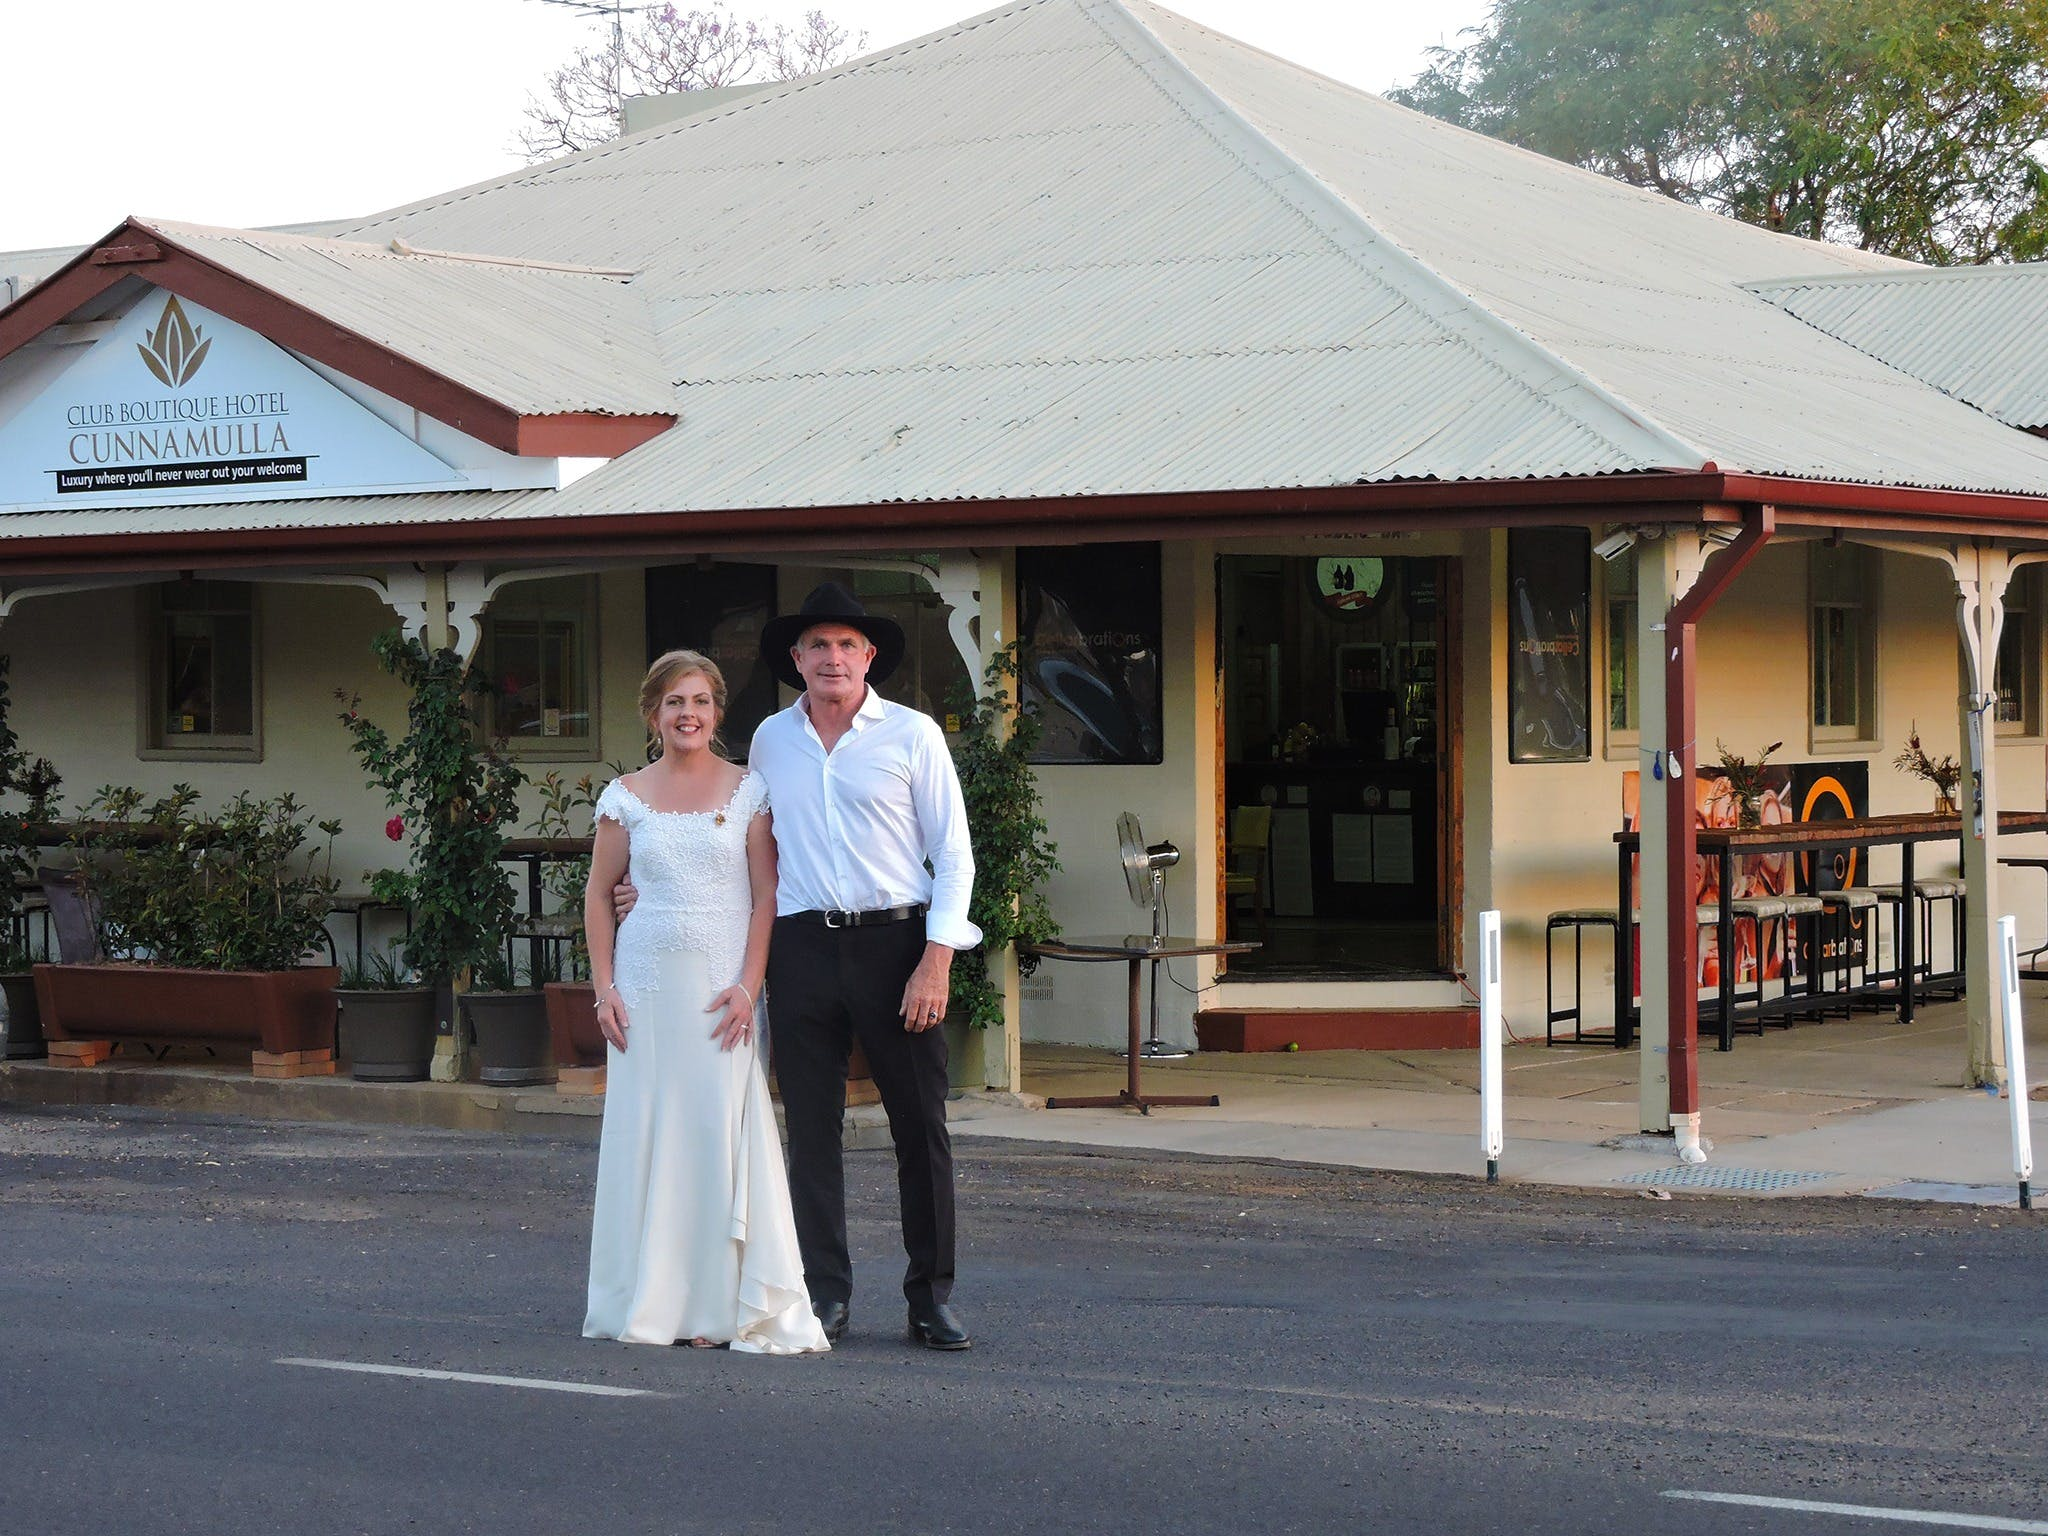 Club Boutique Hotel Cunnamulla - Accommodation Coffs Harbour